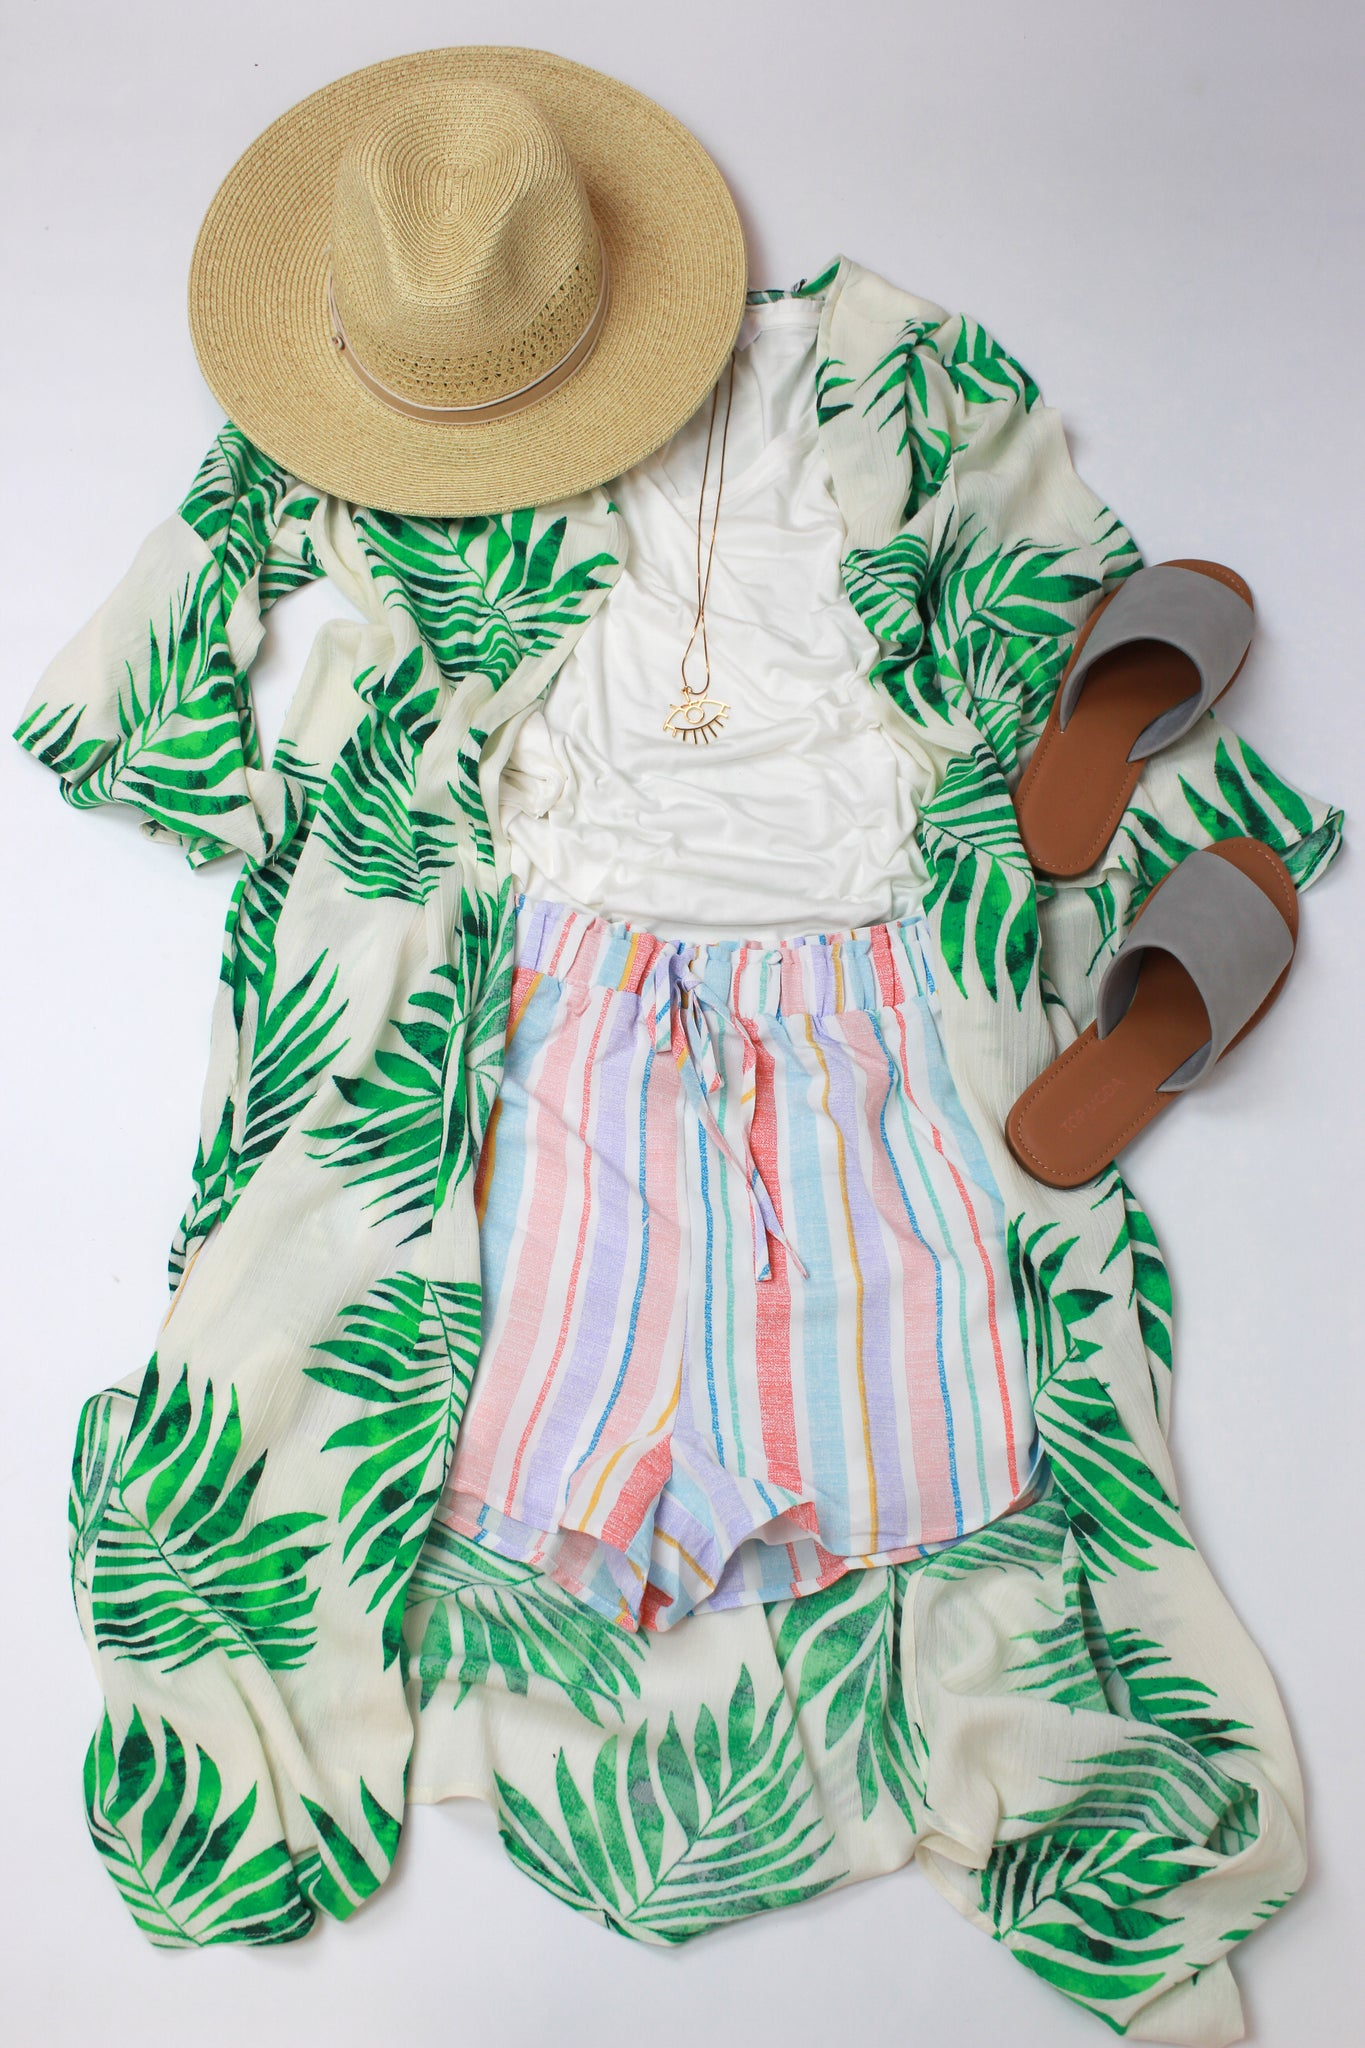 panama hat, leaf printed kimono, white t shirt stripped shorts and grey sandals styled by SoSis in Port Allen, LA